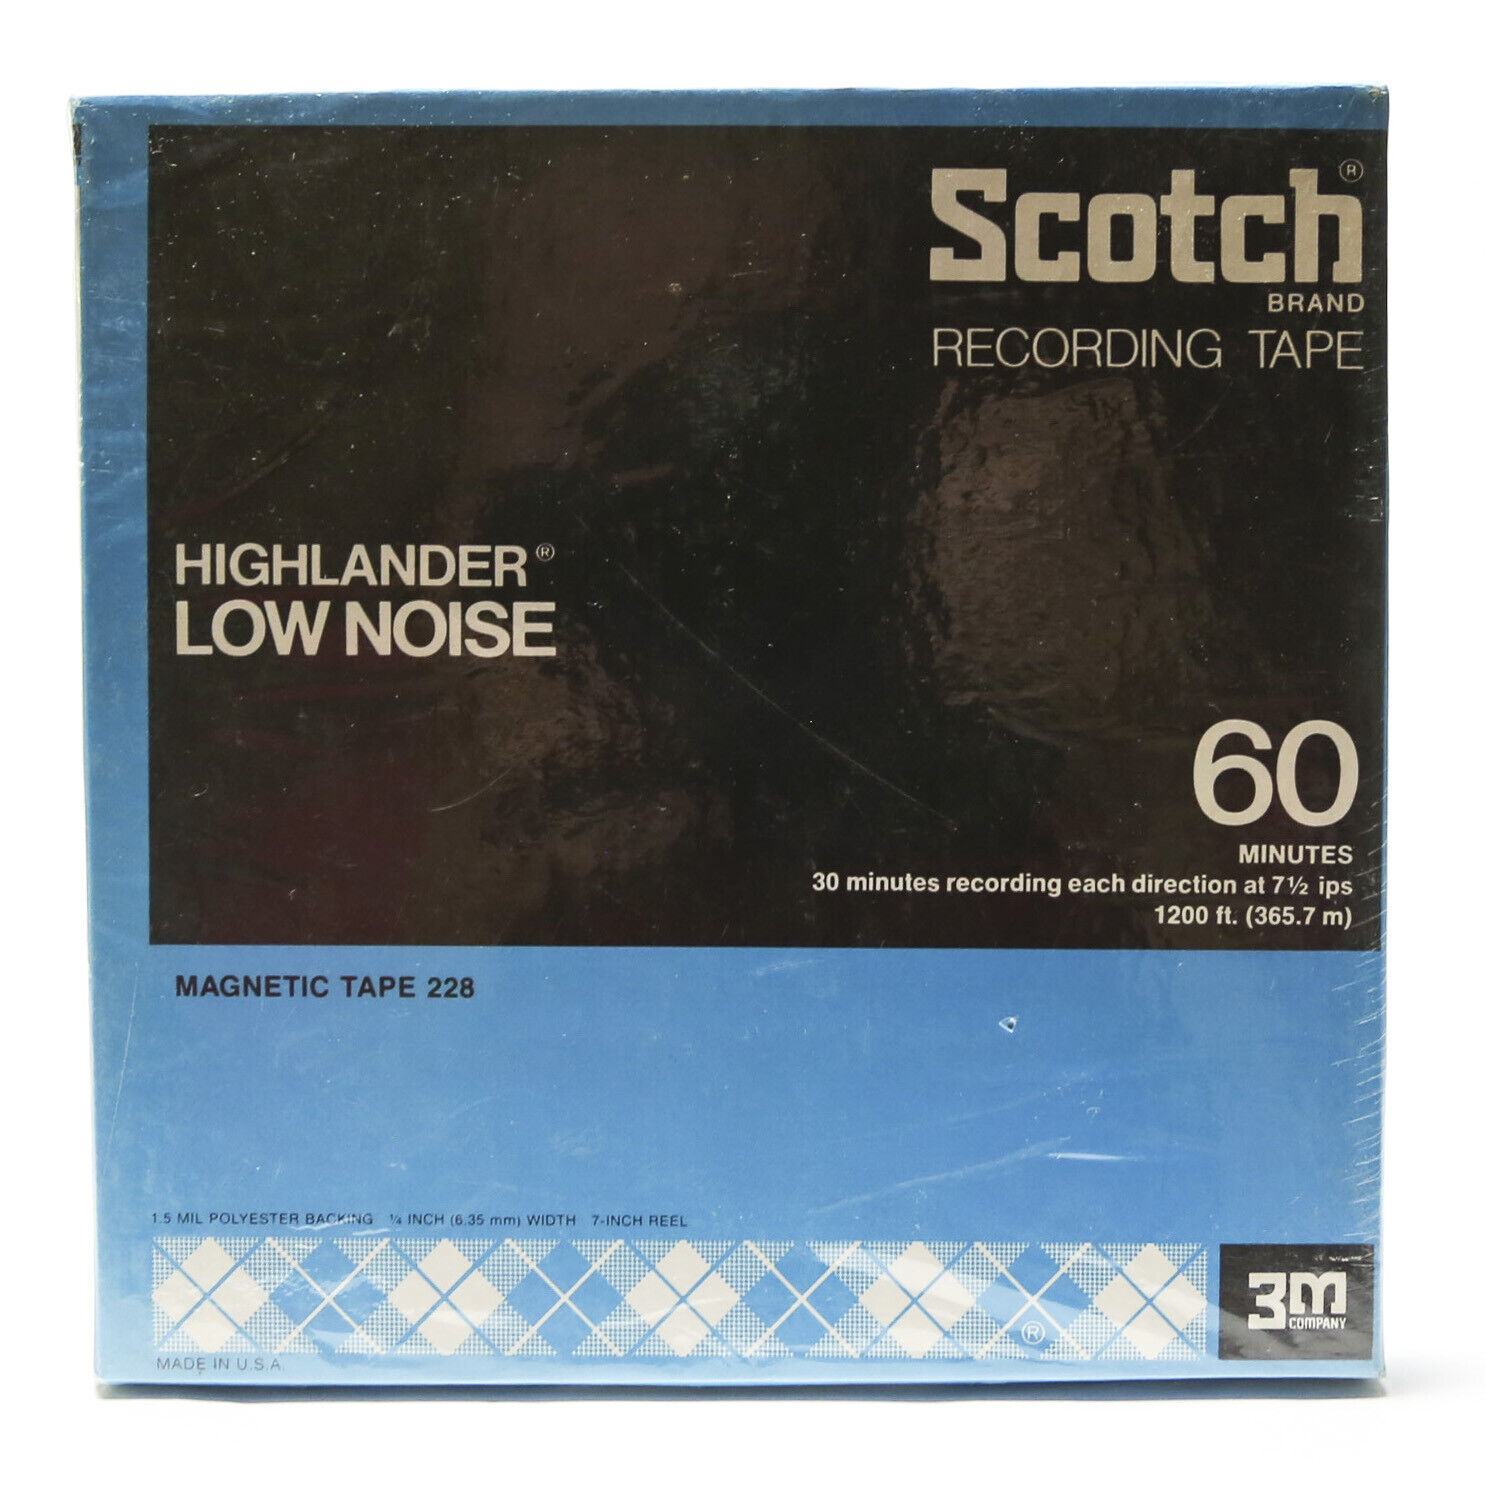 Veg New Scotch Brand Recording Tape Highlander Low Noise 60 Minutes Reel To Reel - $17.99